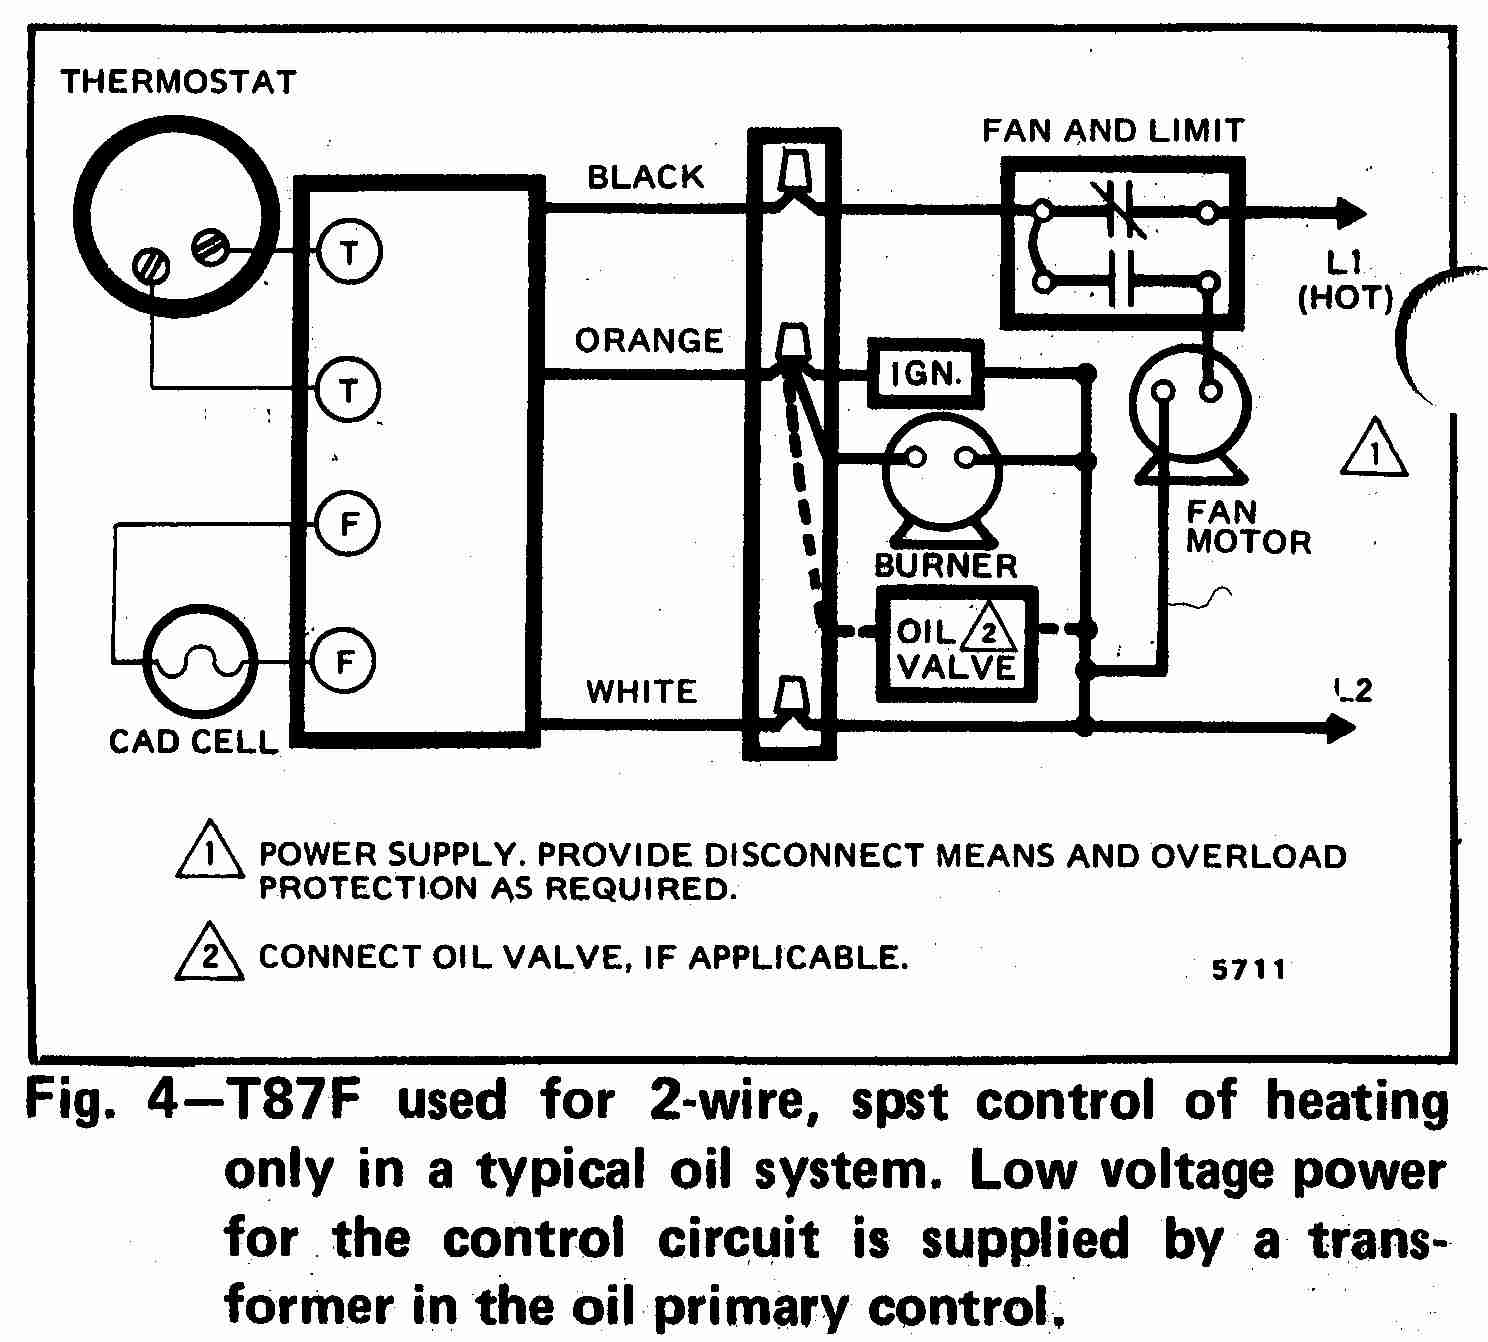 TT_T87F_0002_2W_DJF heil wiring diagram led circuit diagrams \u2022 free wiring diagrams Subaru Outback Wiring-Diagram at gsmx.co